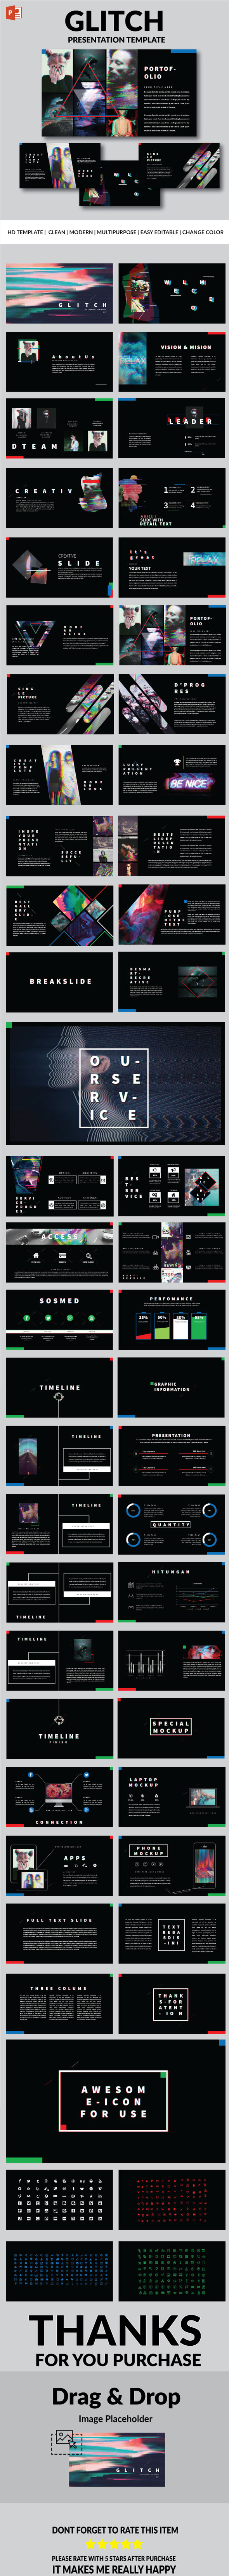 Glitch - Multipurpose PowerPoint Template - PowerPoint Templates Presentation Templates